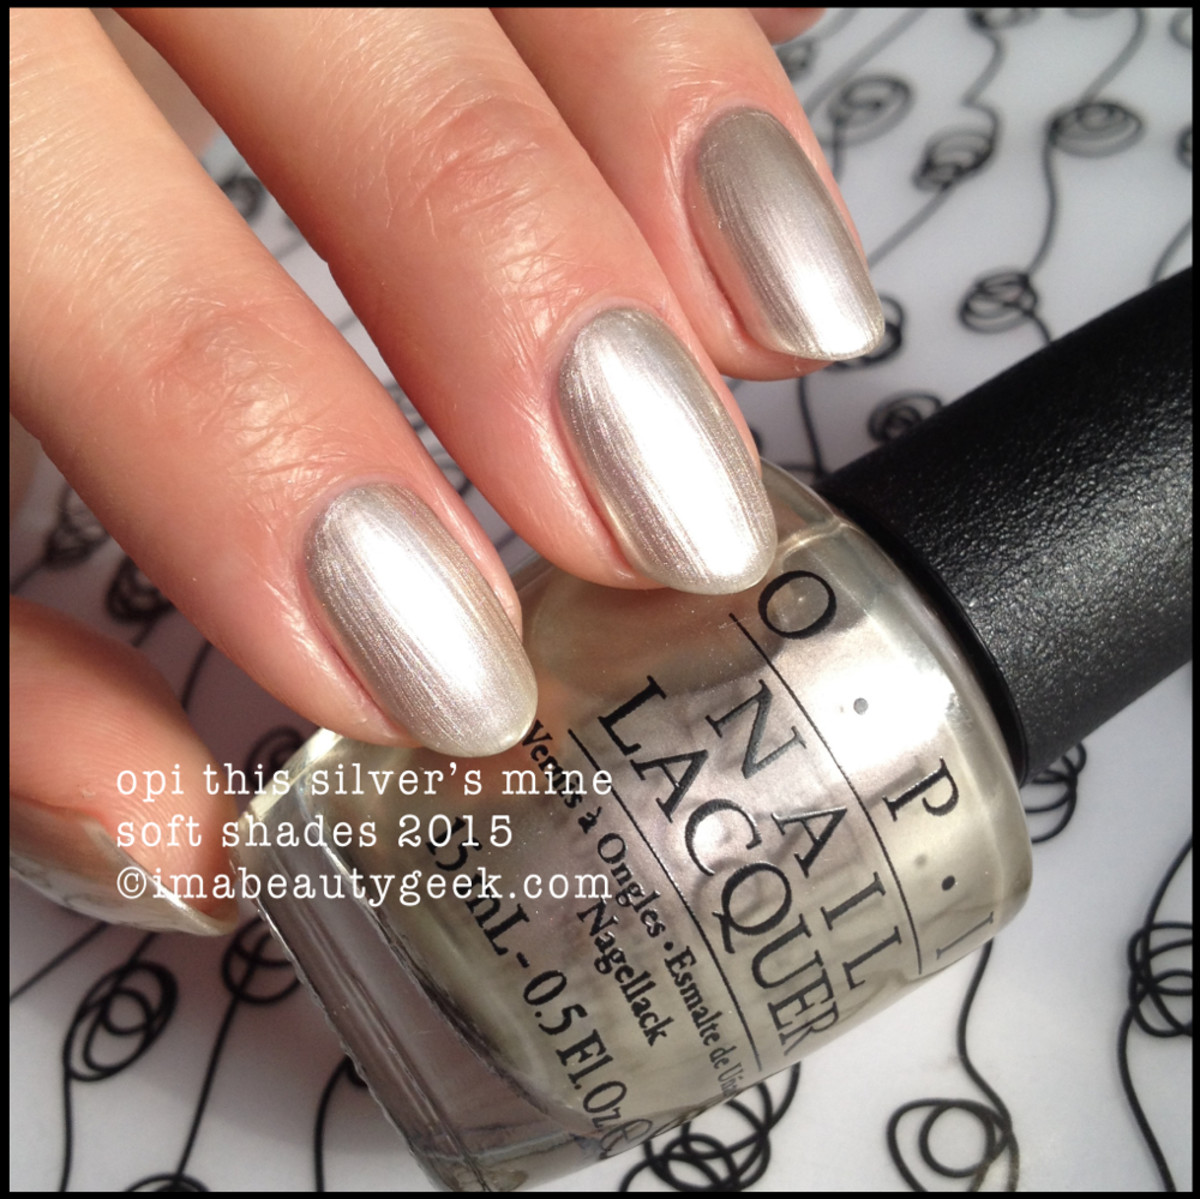 OPI Soft Shades 2015 This Silver's Mine